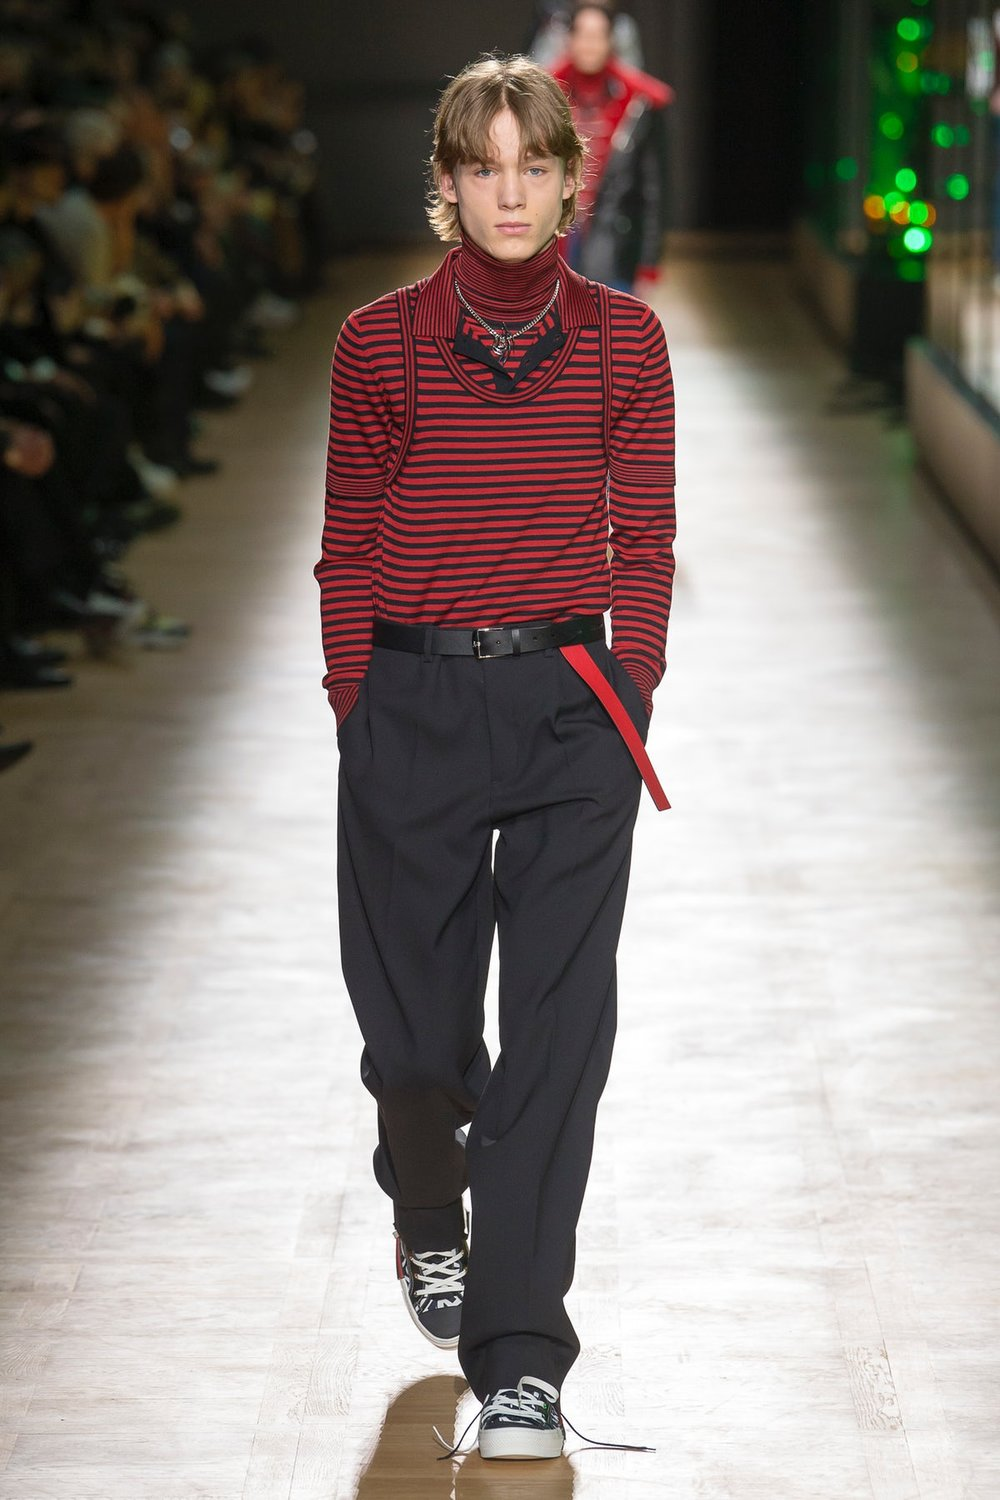 dior_homme_look_18_menswear_autumn_2018.jpeg